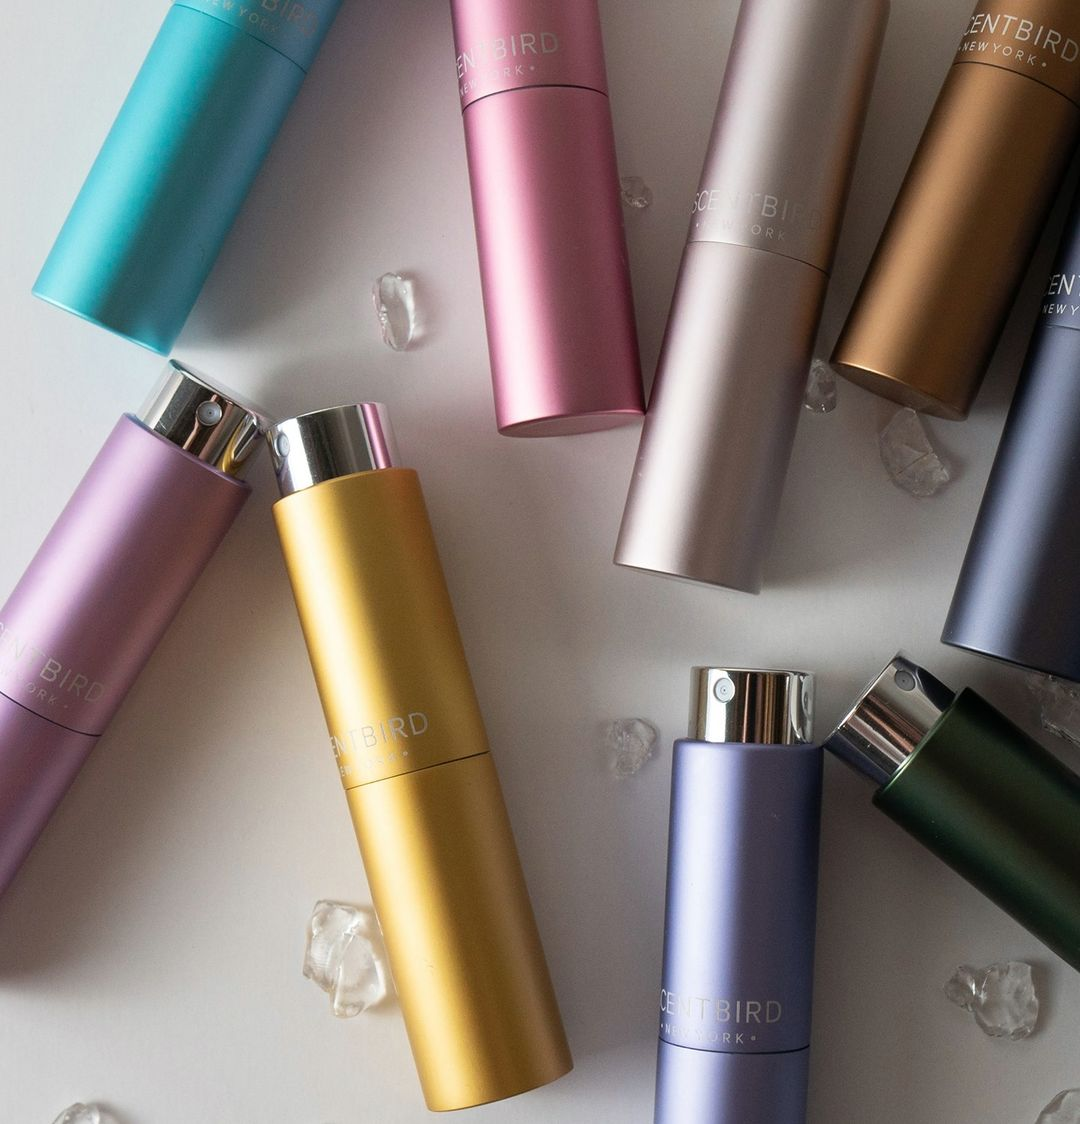 Perfumes For Those Born In May